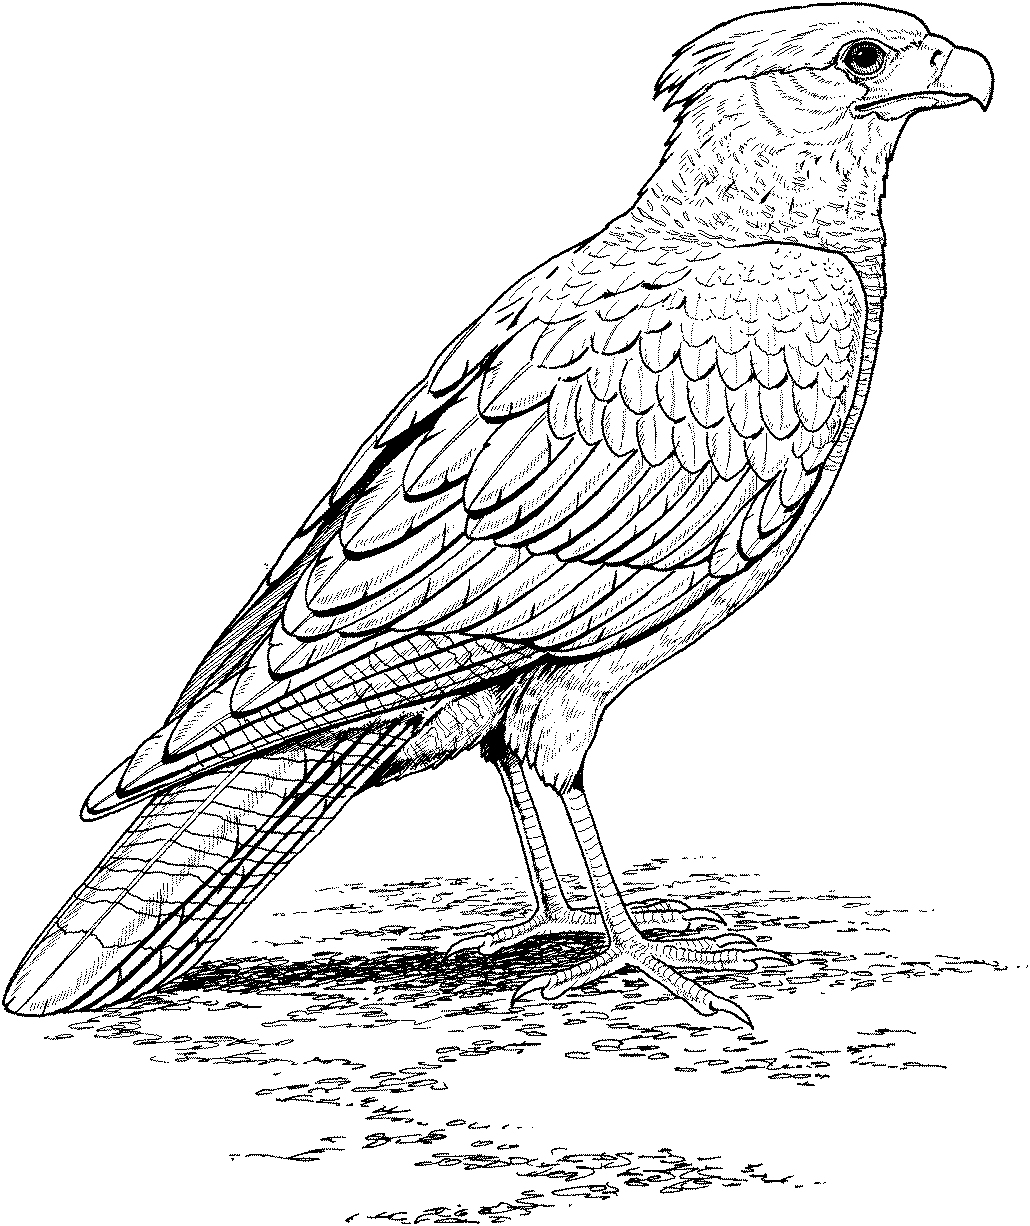 Realistic Animal Coloring Pages Fresh Free Wild Gallery Printable - Free Printable Realistic Animal Coloring Pages